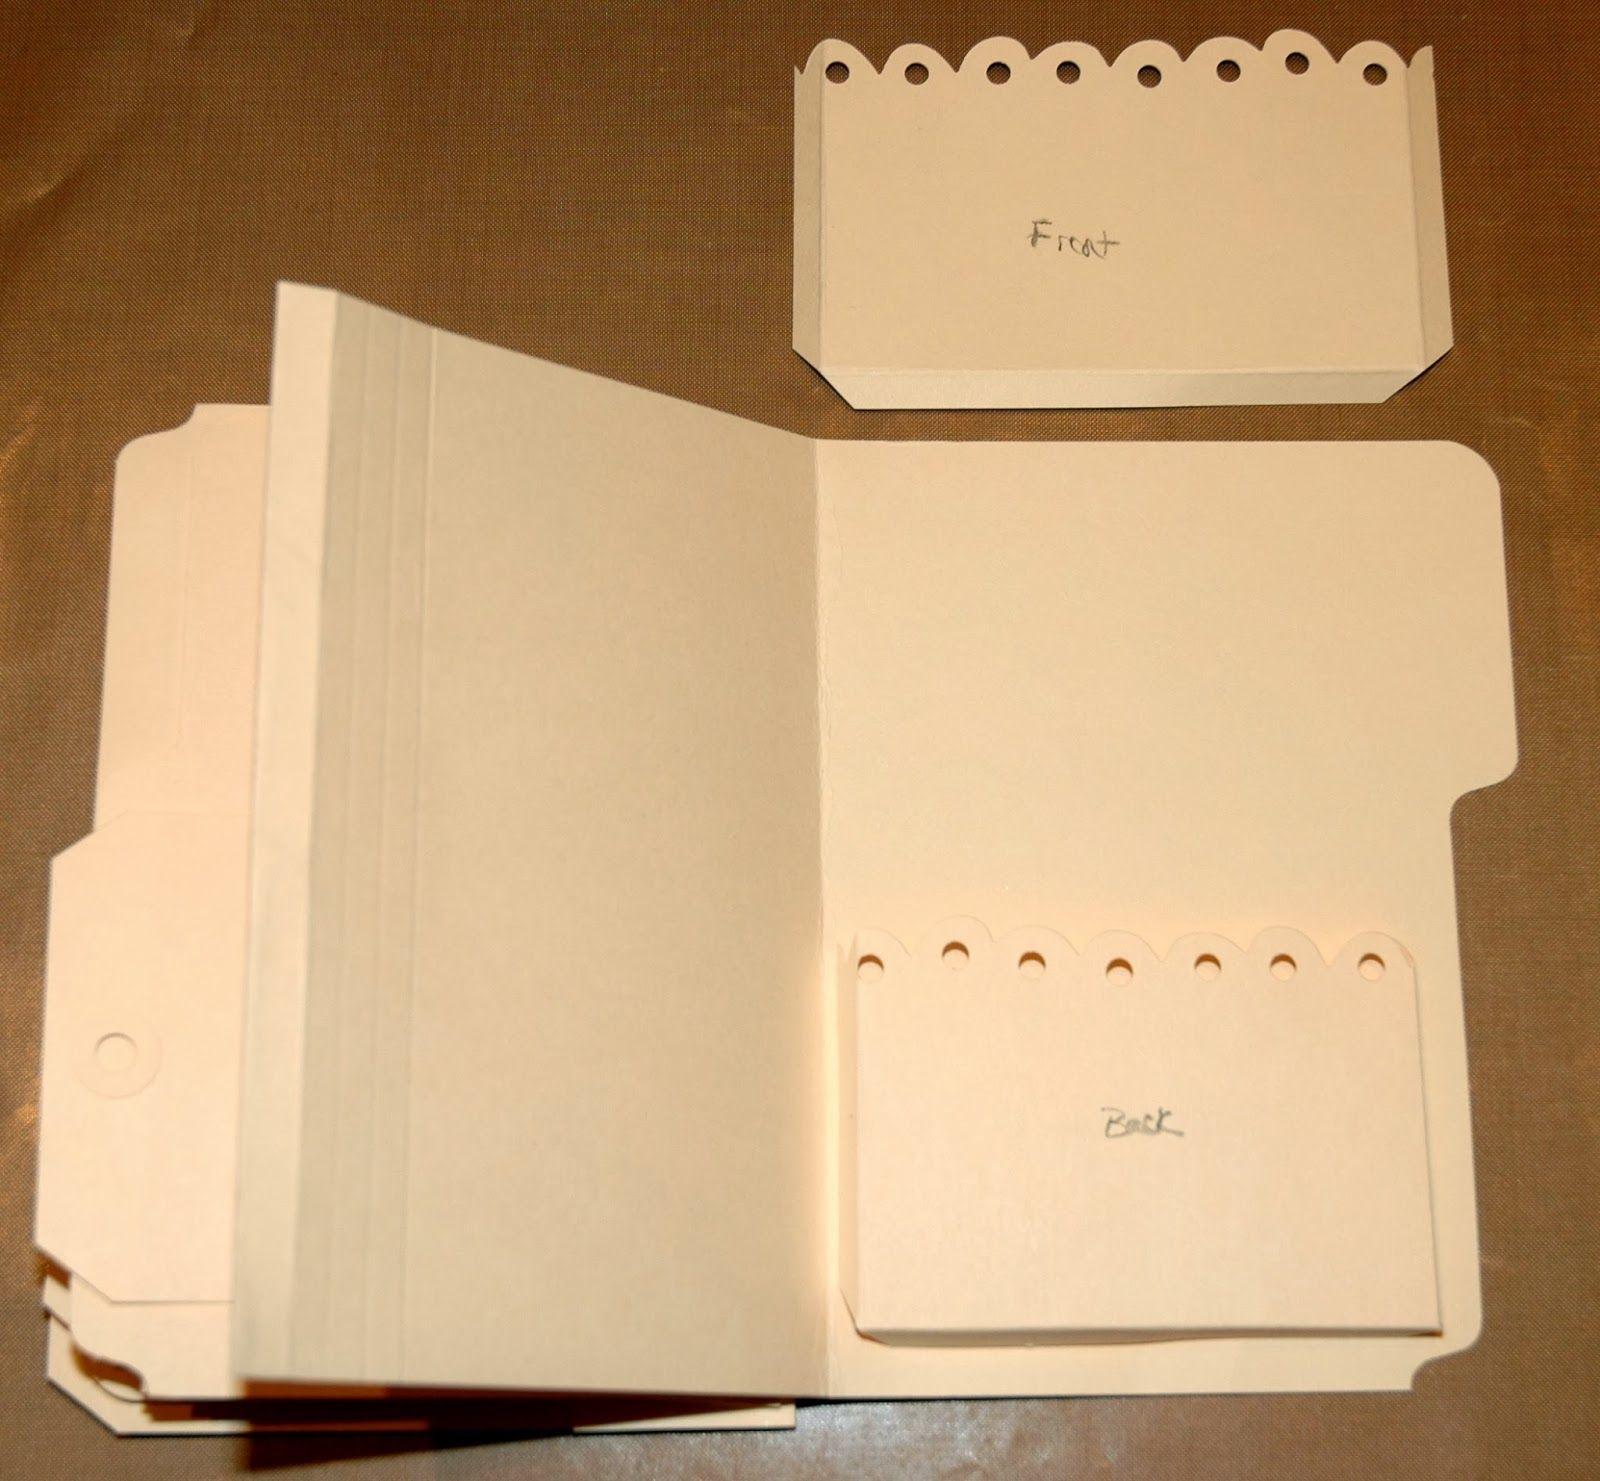 Mini Album From Manilla Folders Genuis CREATIVITY IS CONTAGIOUS A VINTAGE MINI ALBUM FILLED WITH WORDS